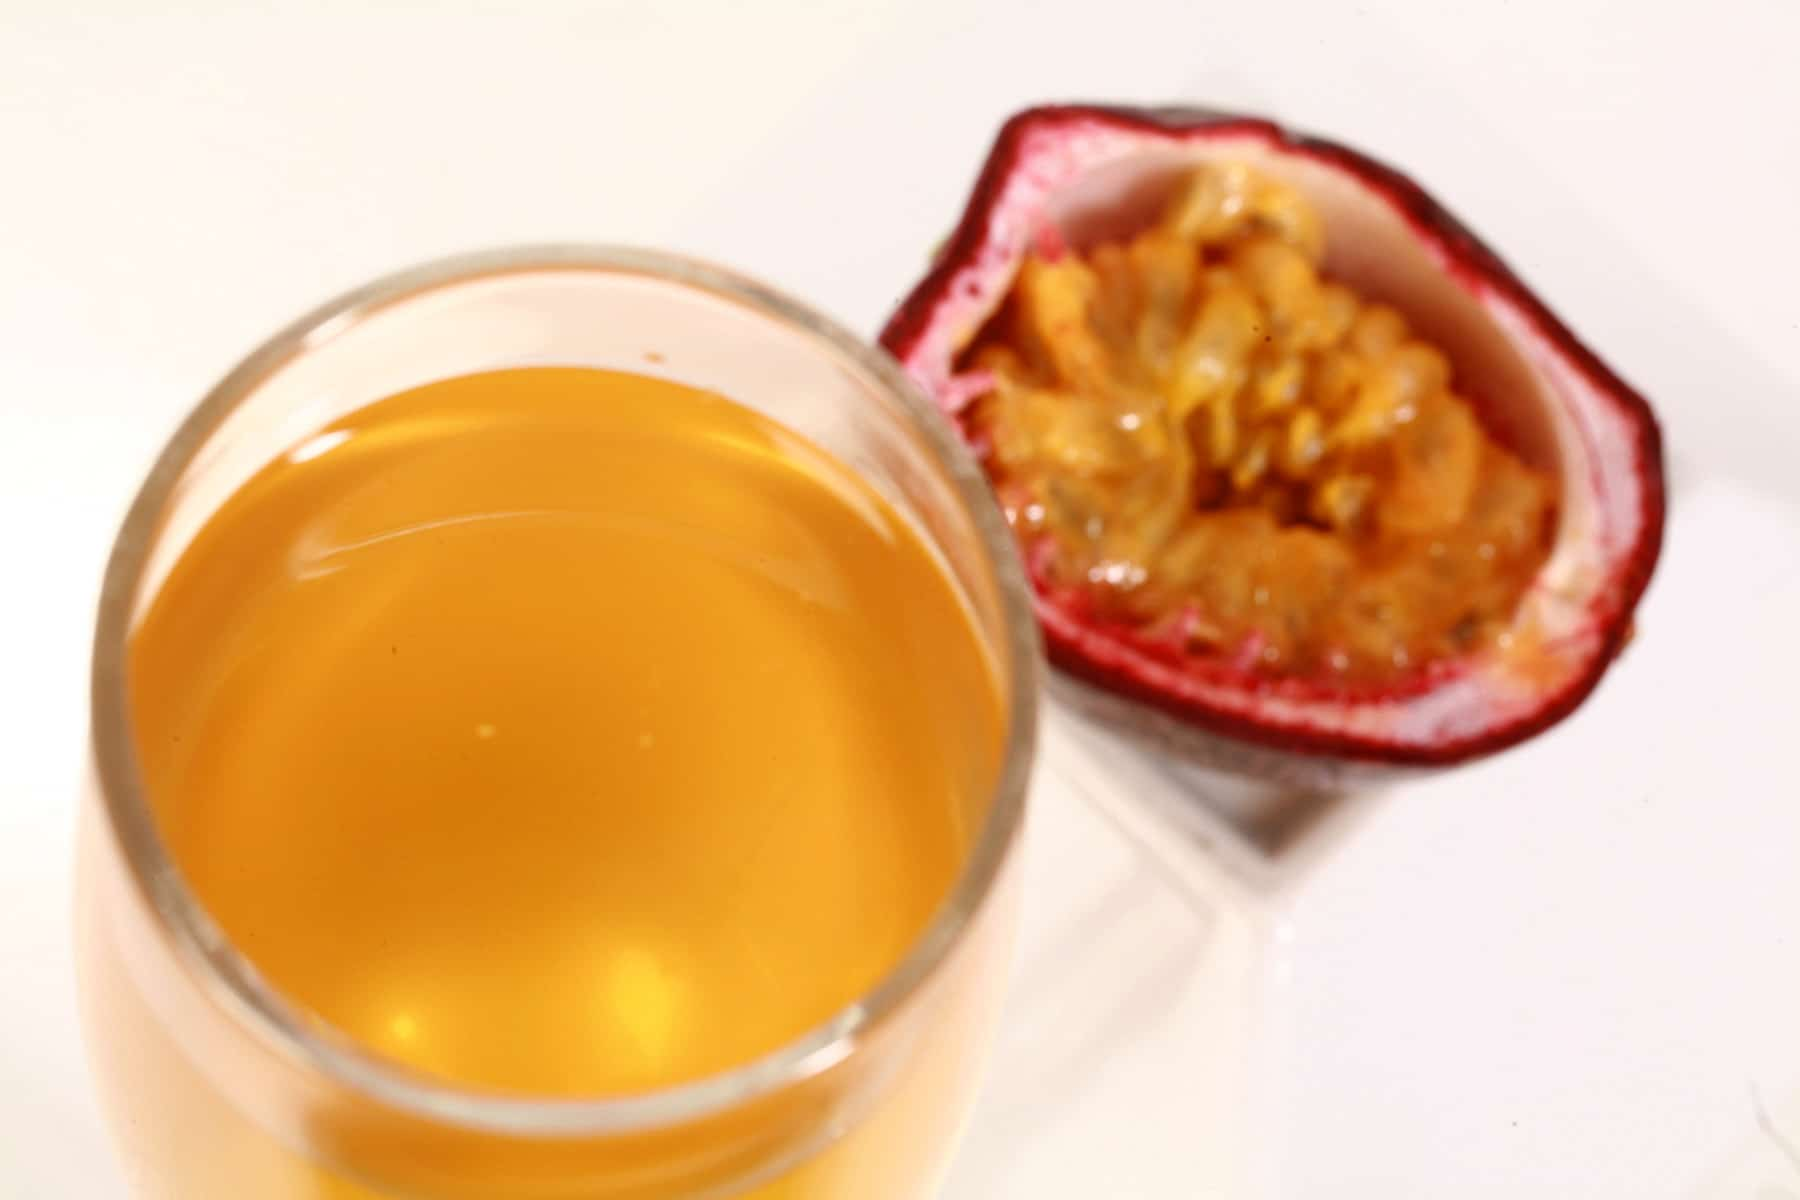 A flute of golden yellow passionfruit wine, next to a halved passionfruit.